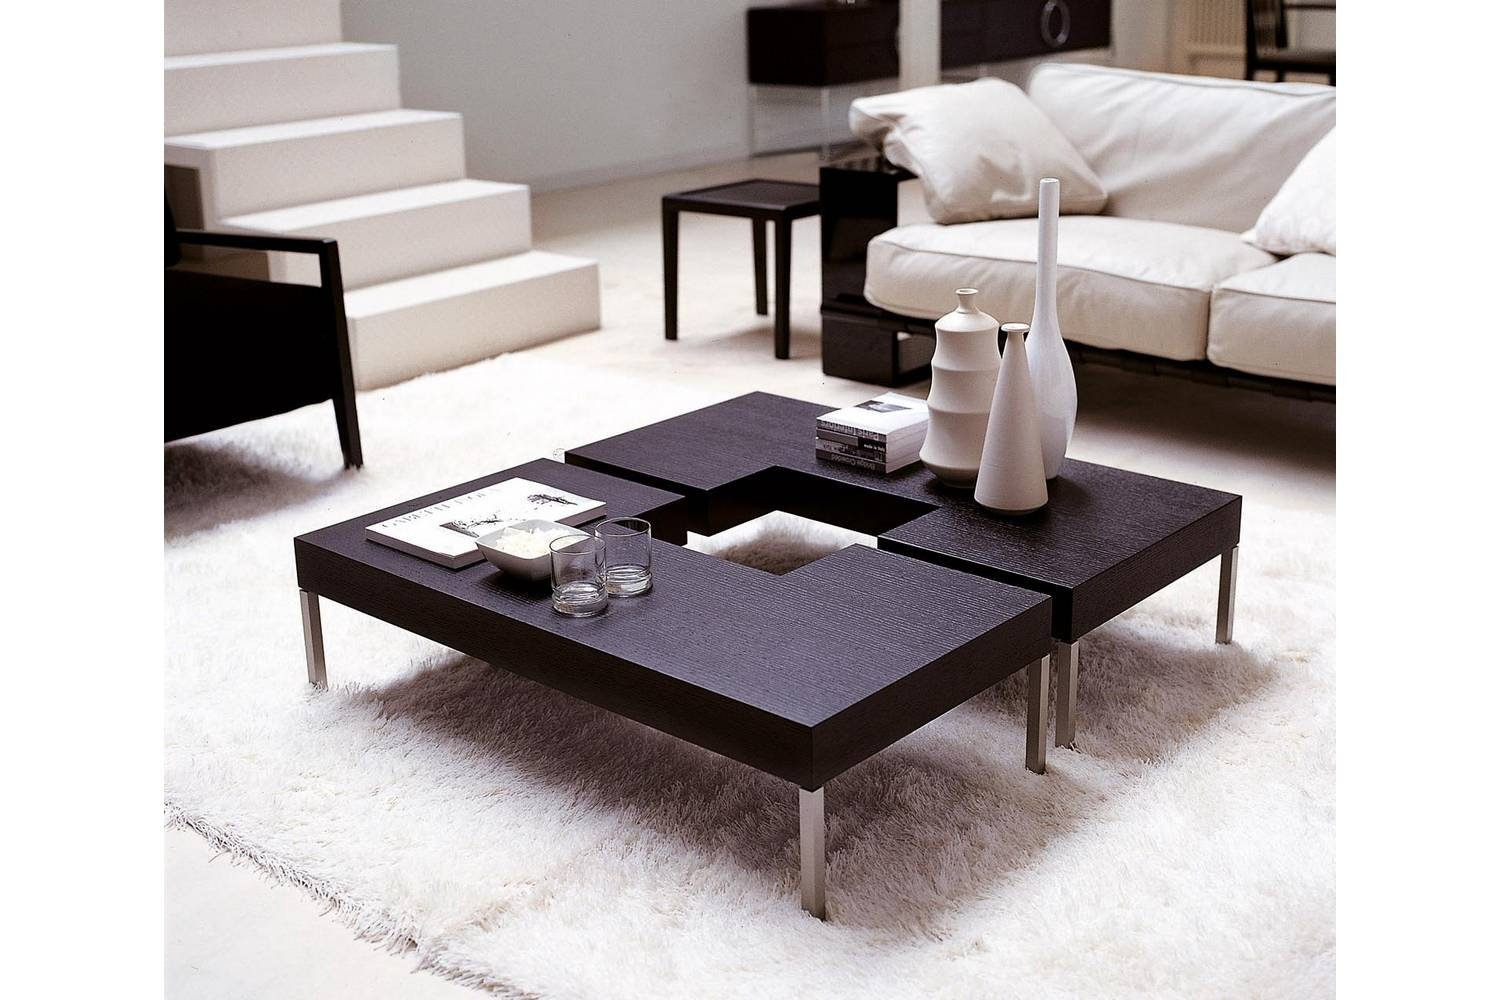 Puzzle Coffee Table by T. Colzani for Porada